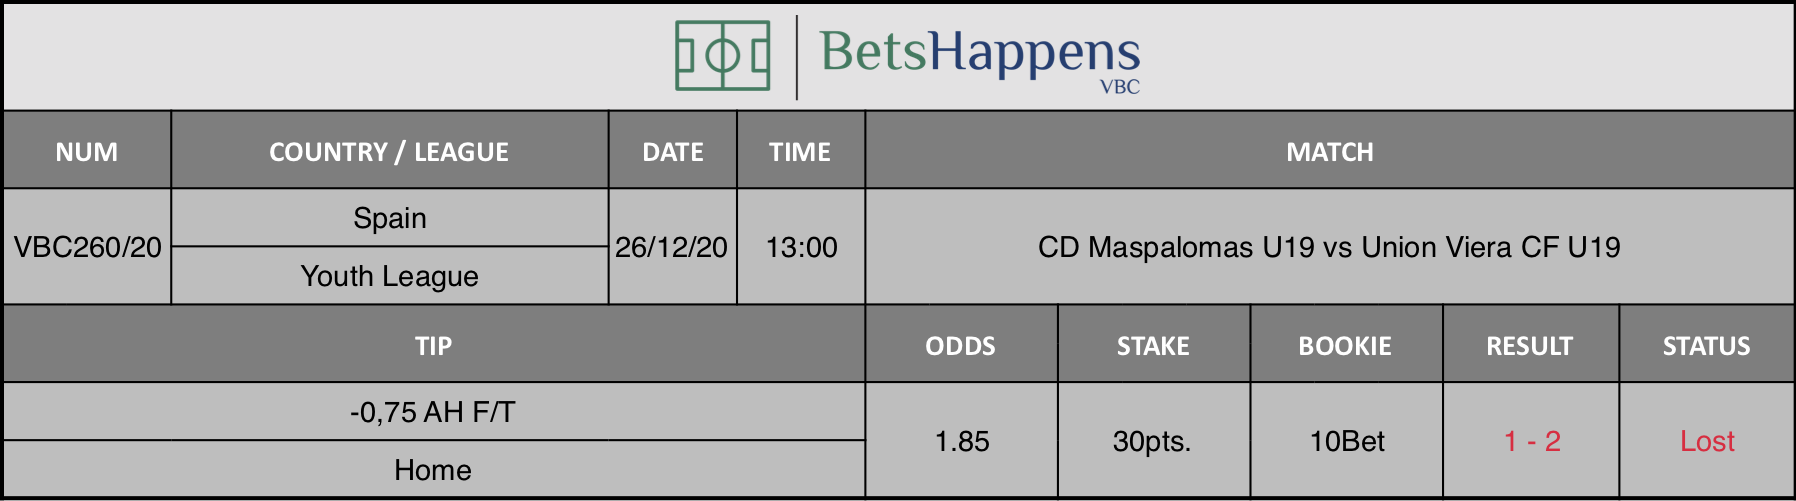 Results of our tip for the CD Maspalomas U19 vs Union Viera CF U19 match where -0,75 AH F/T Home is recommended.